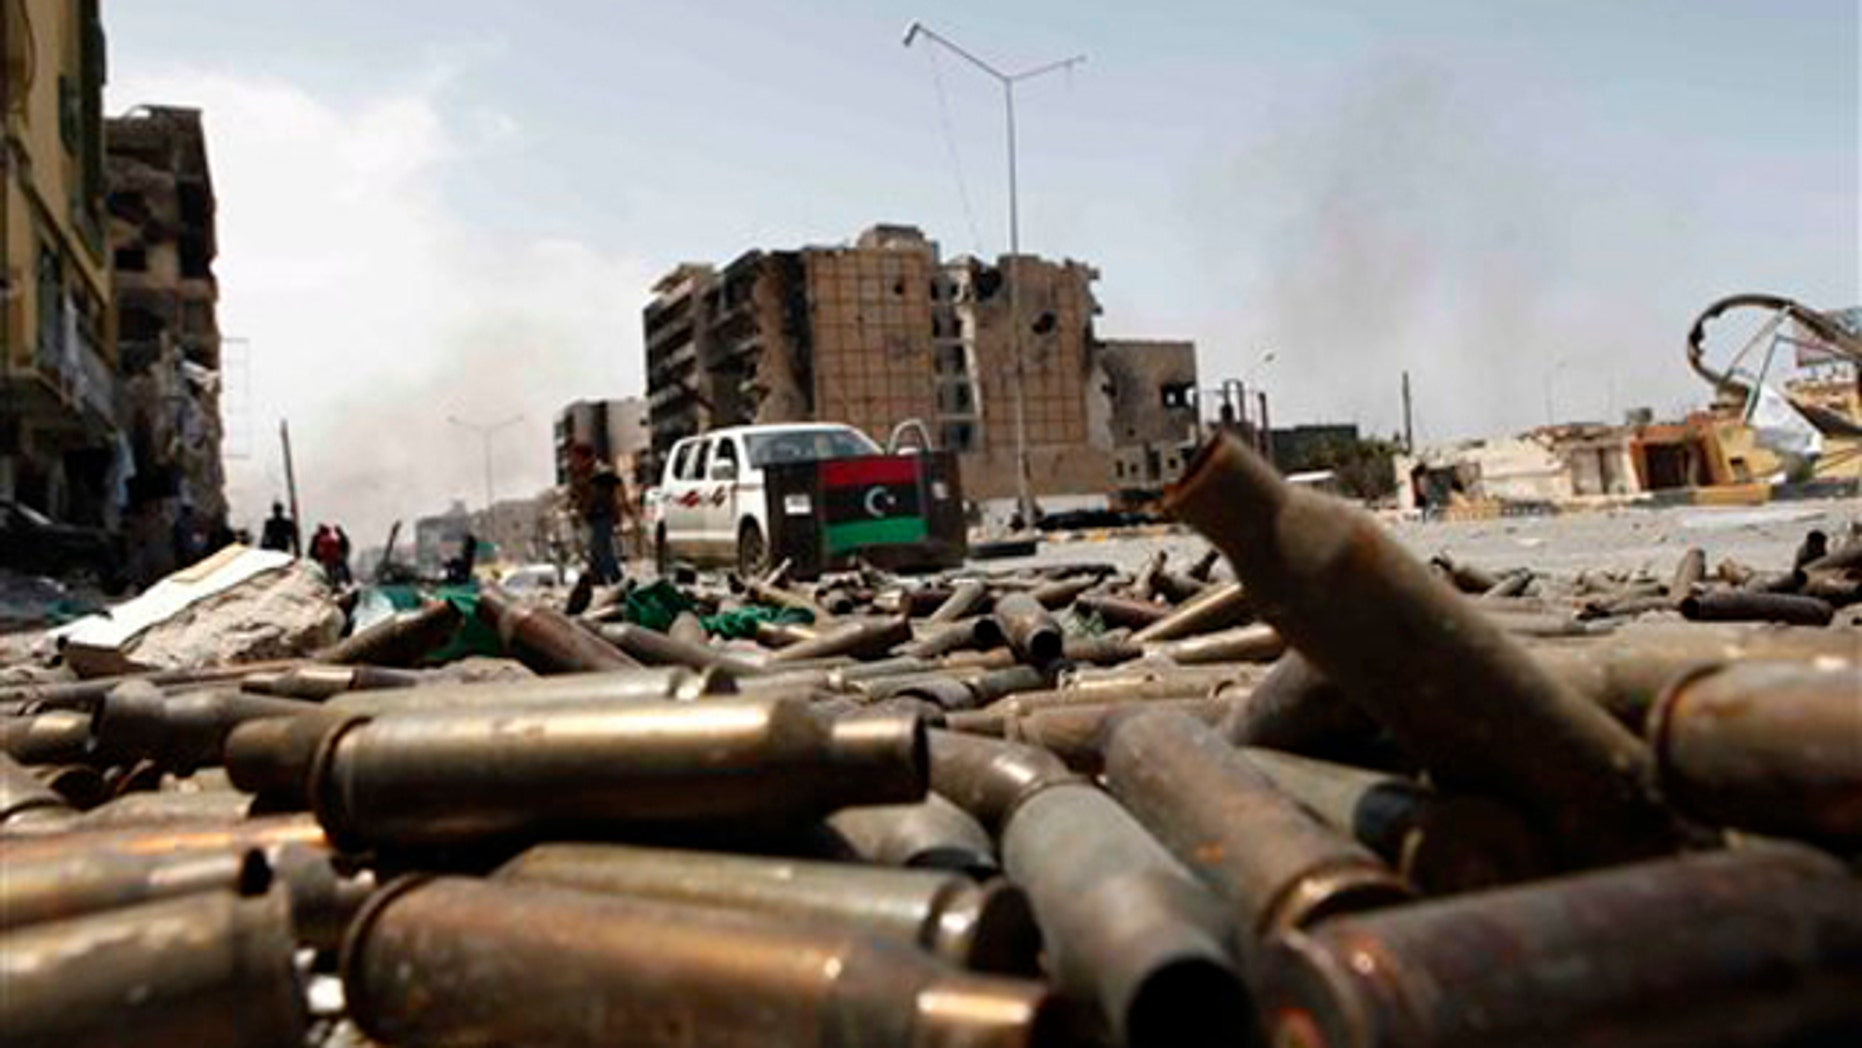 In this April 23 file photo, bullet casings litter a street in the besieged city of Misrata, Libya.